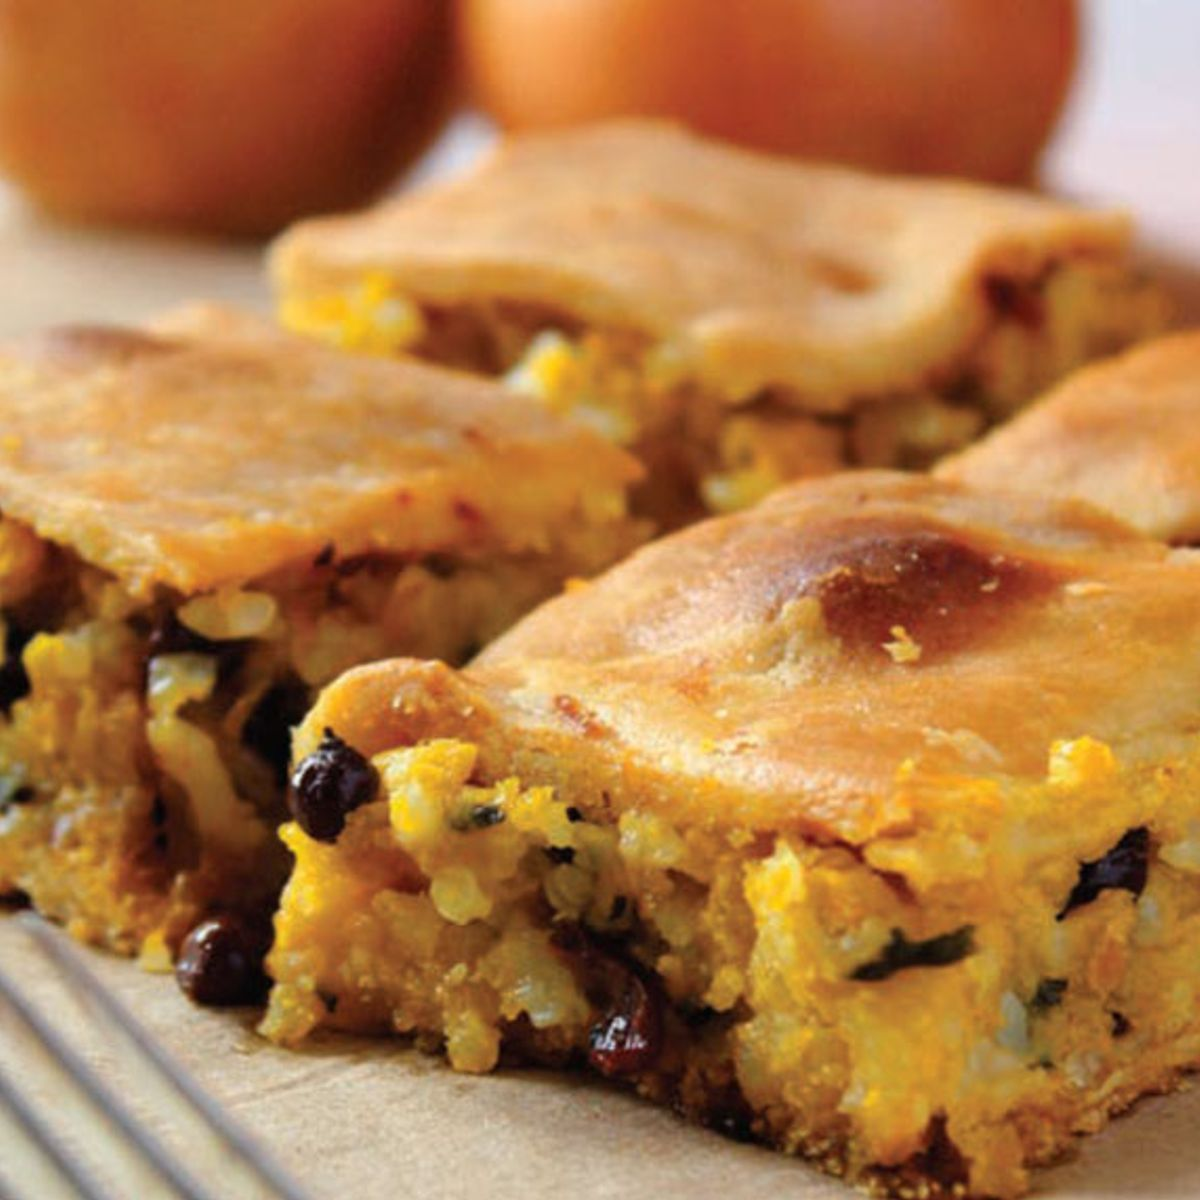 Greek pastry: Bake kolokythopita with pumpkin — not zucchini